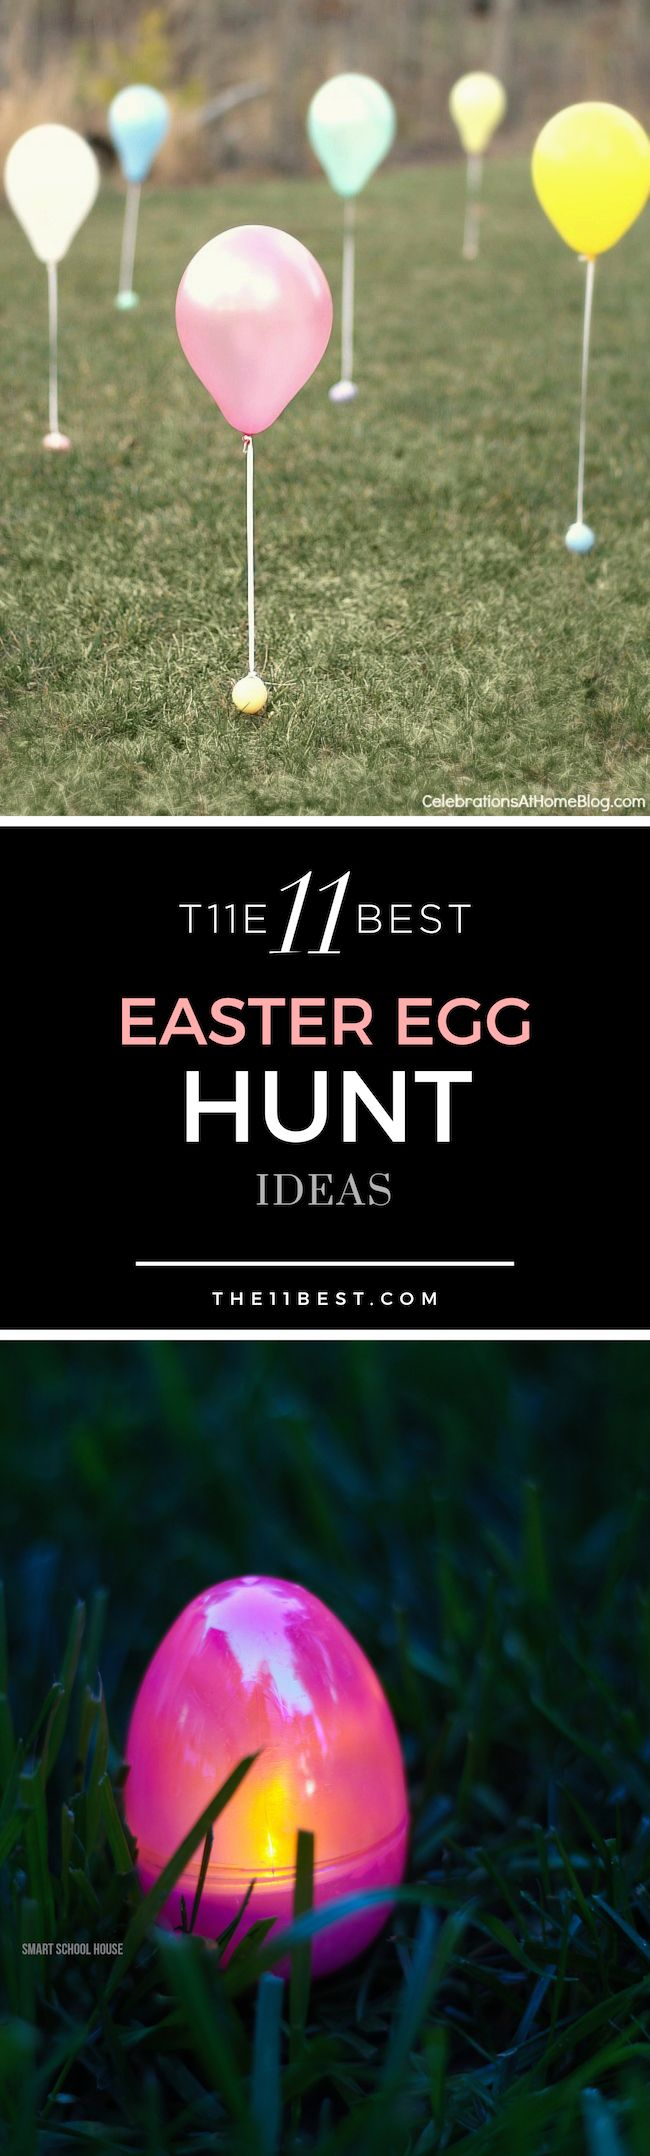 Easter Egg Hunt Ideas Glow In The Dark Eggs Balloon For Toddlers And Babies